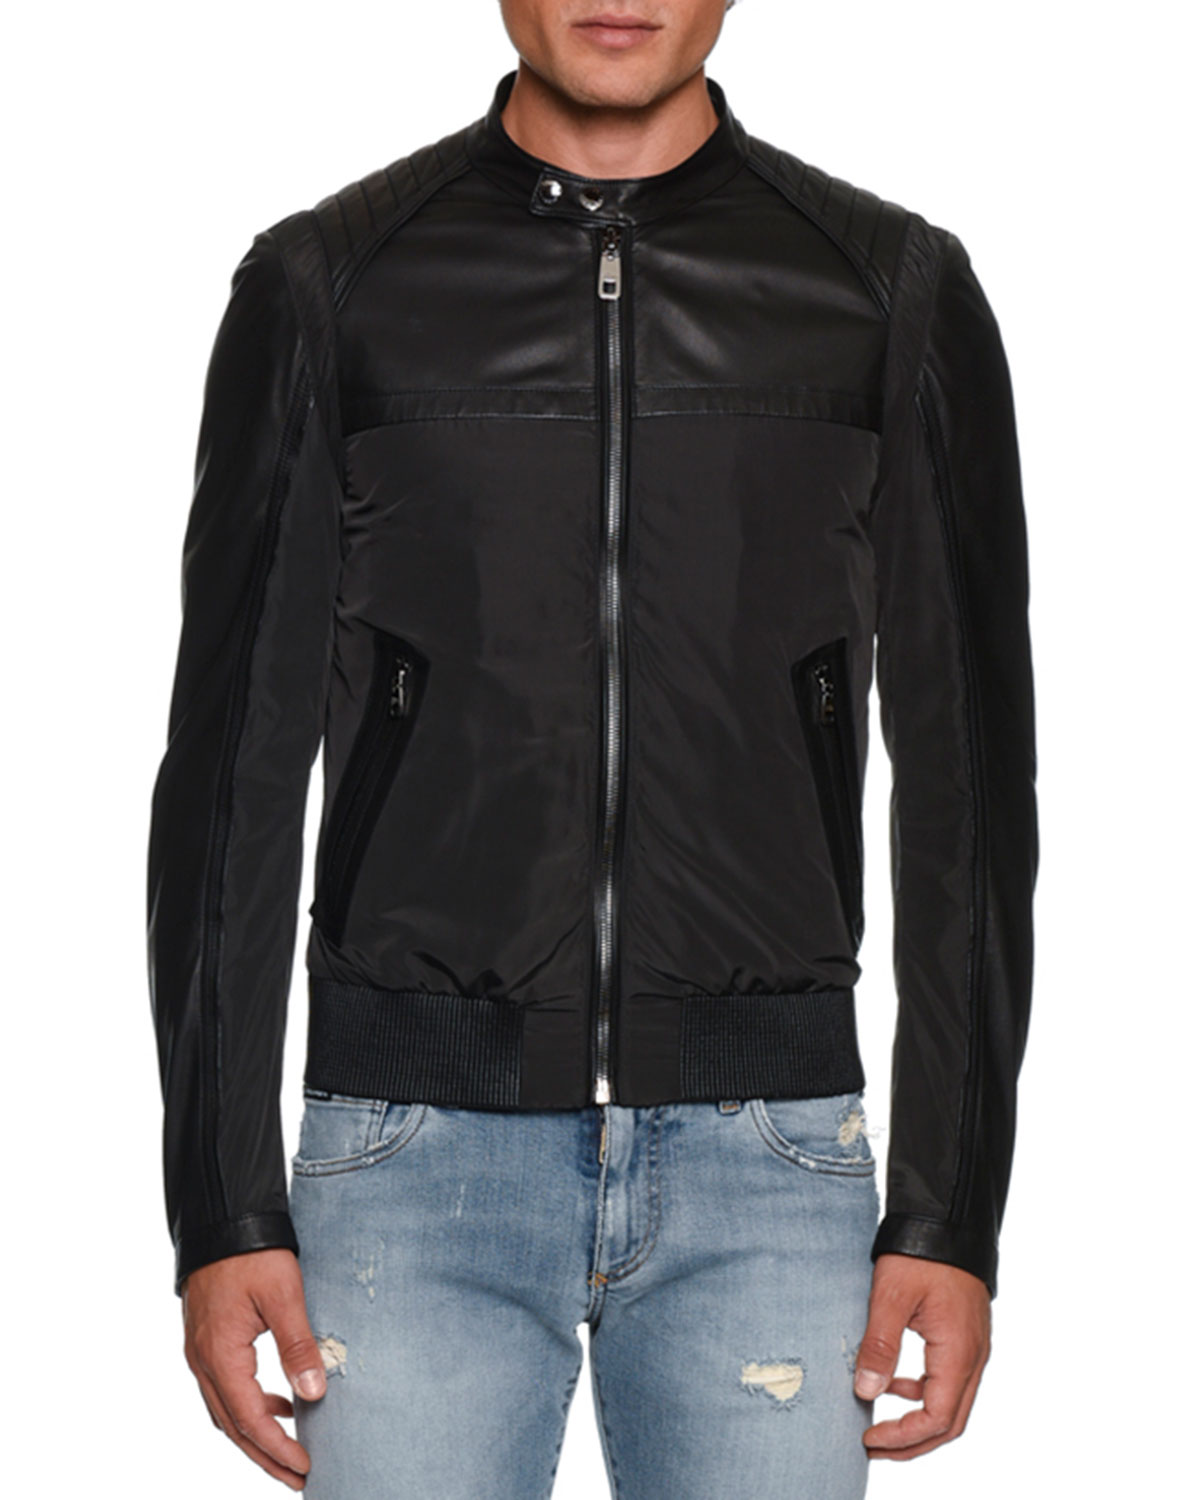 Sales promotion famous brand search for genuine Men's Nylon/Leather Bomber Jacket